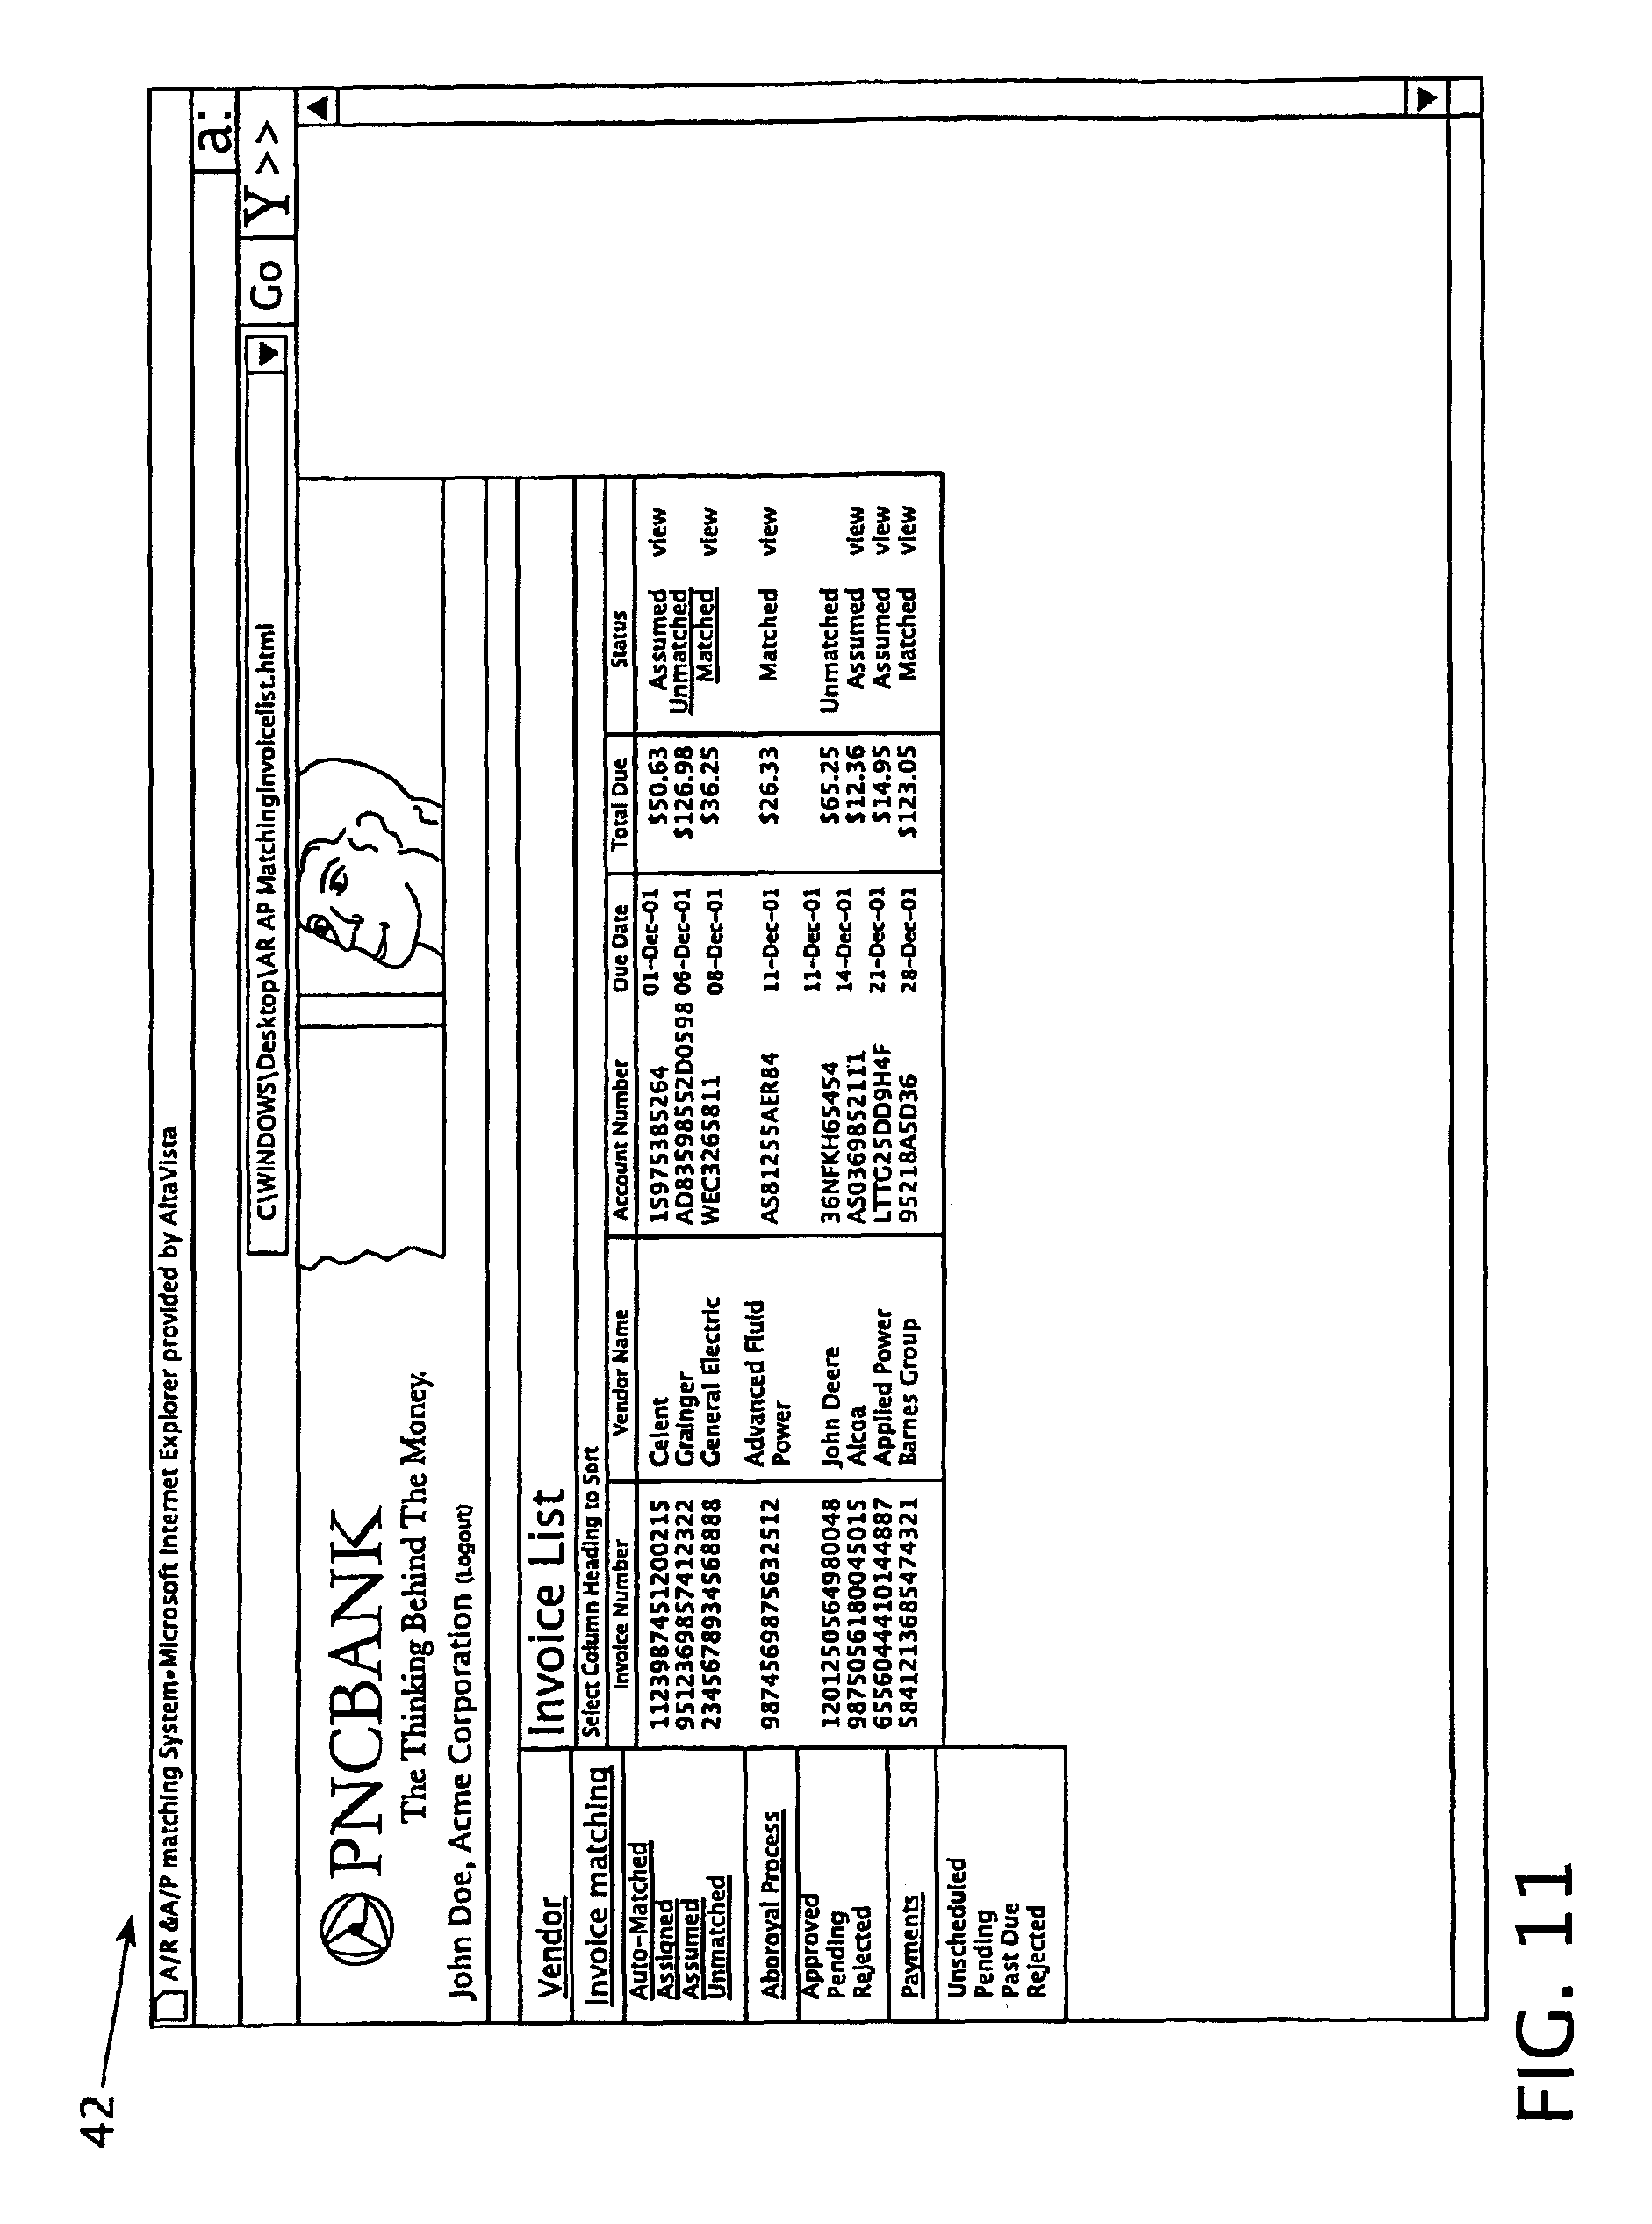 Receipt Organization Patent Us  Accounts Payable Process  Google Patents Samples Of Invoices For Payment Excel with Property Payment Receipt Format Patent Drawing Invoicing Online Pdf